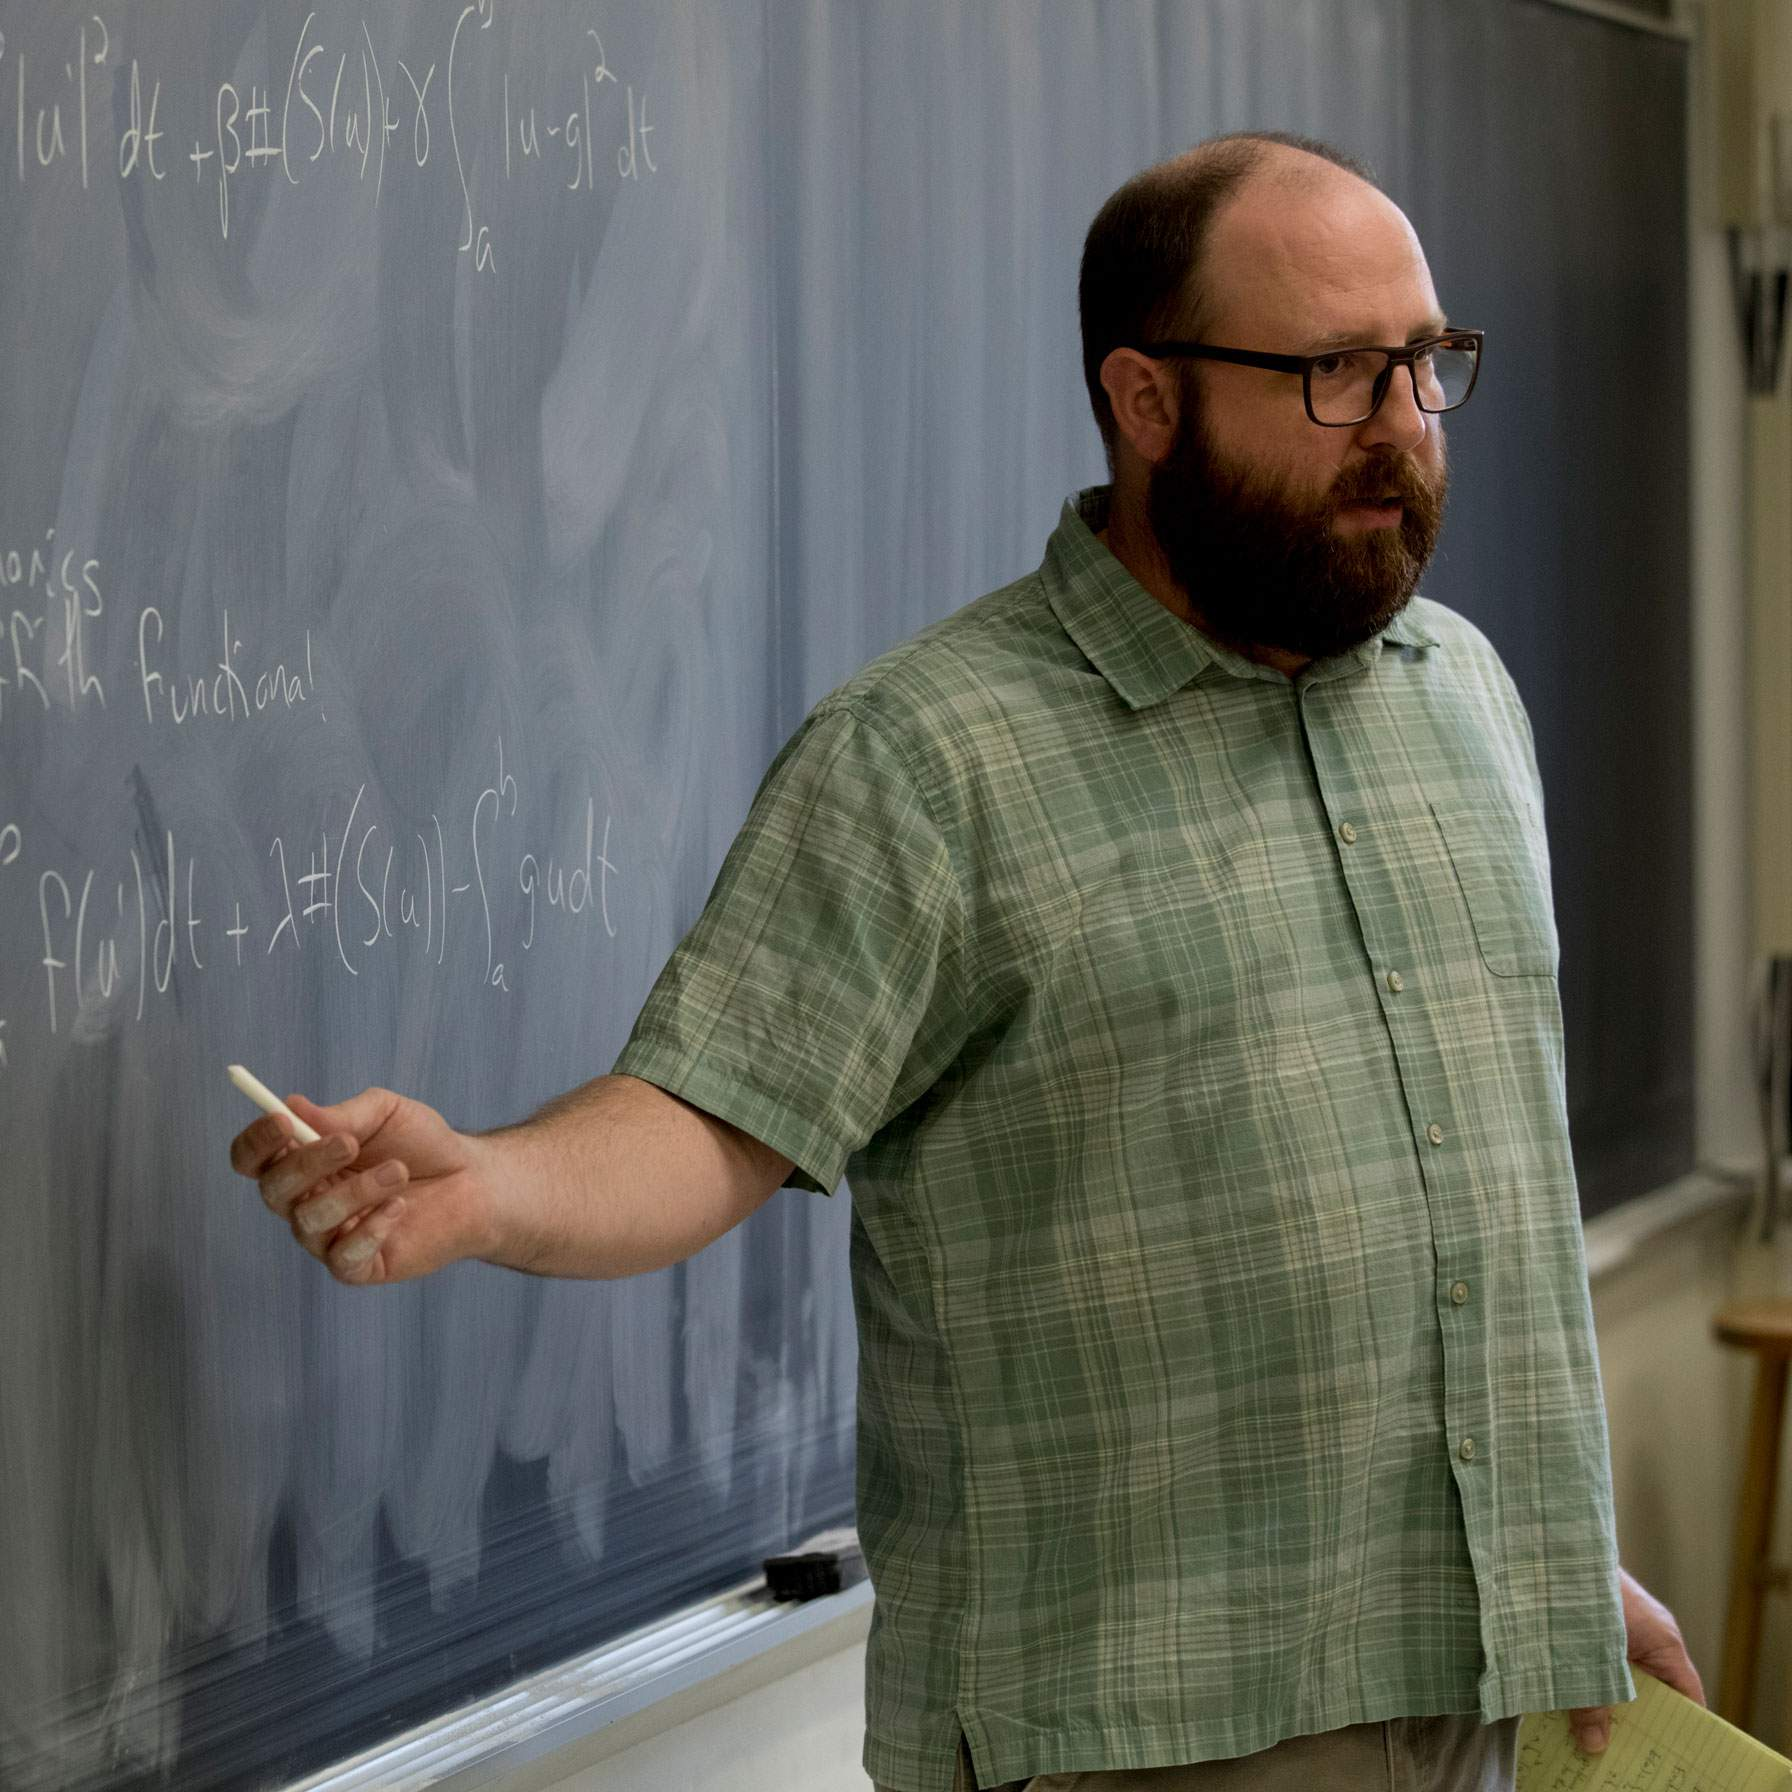 professor going over lesson at chalkboard